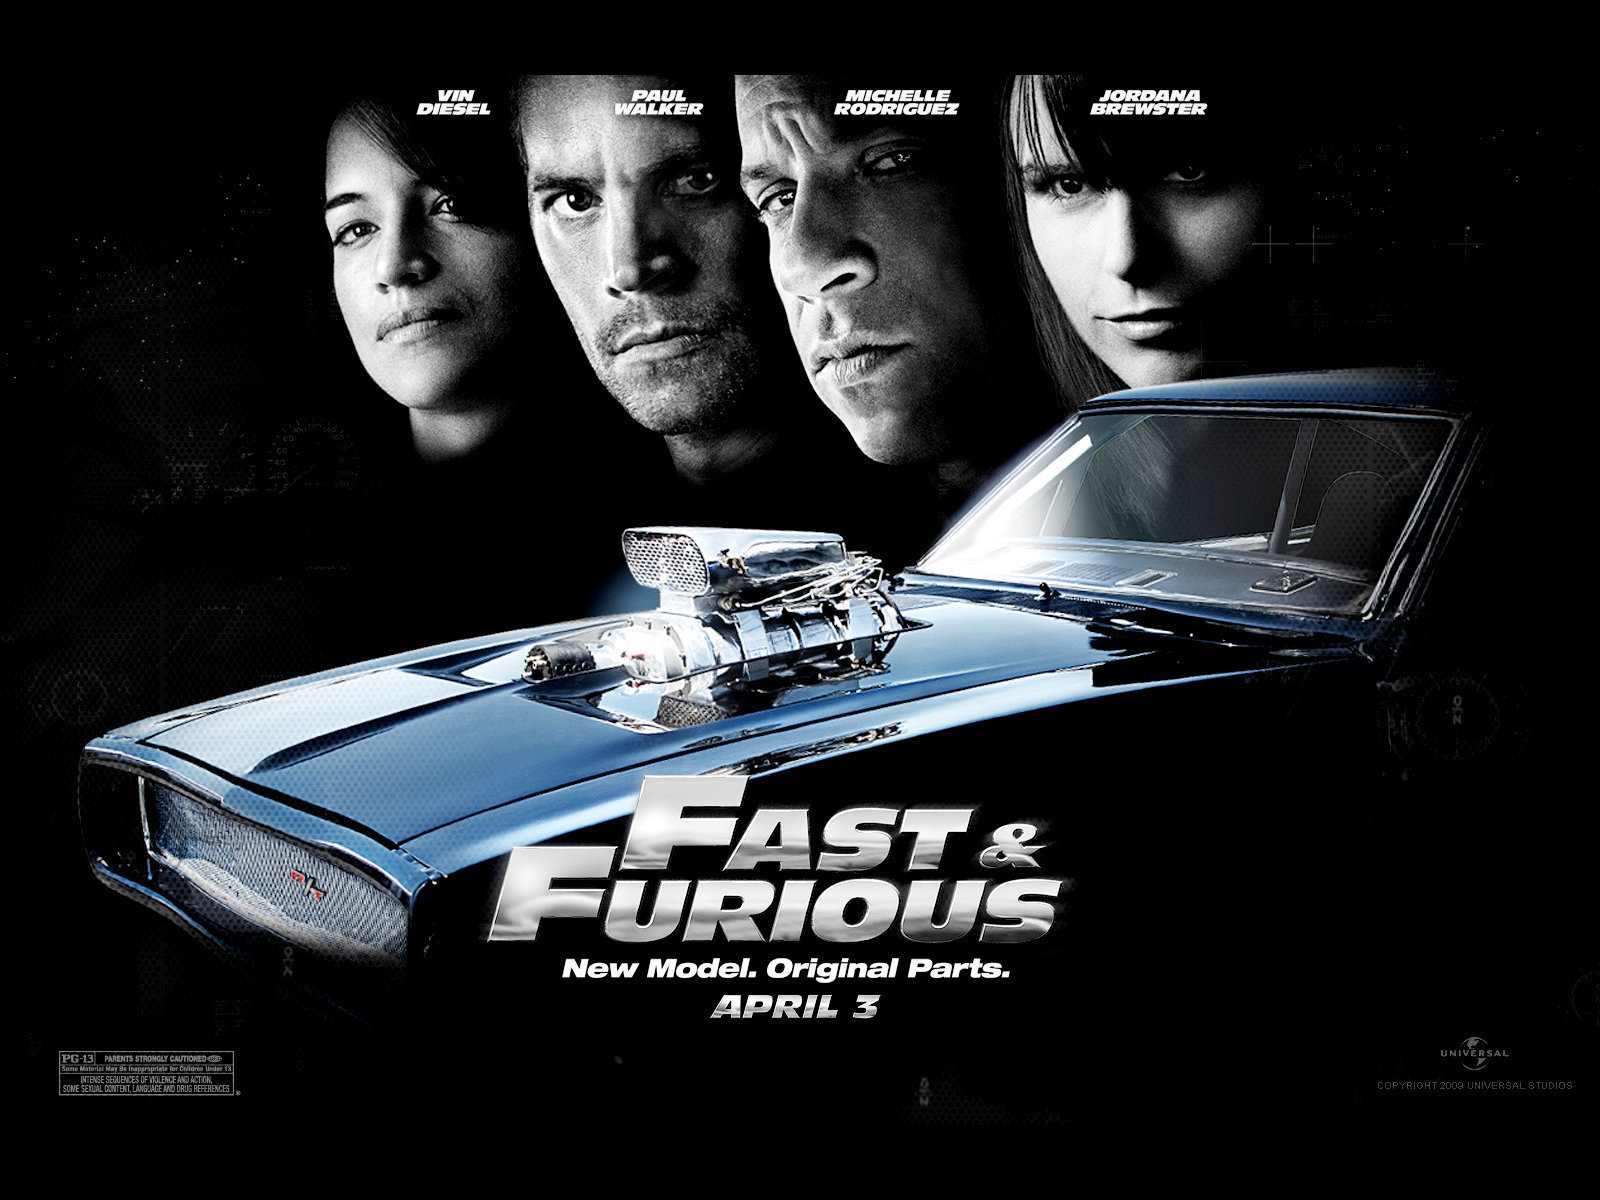 Fast & Furious - Upcoming Movies Wallpaper (5012473) - Fanpop